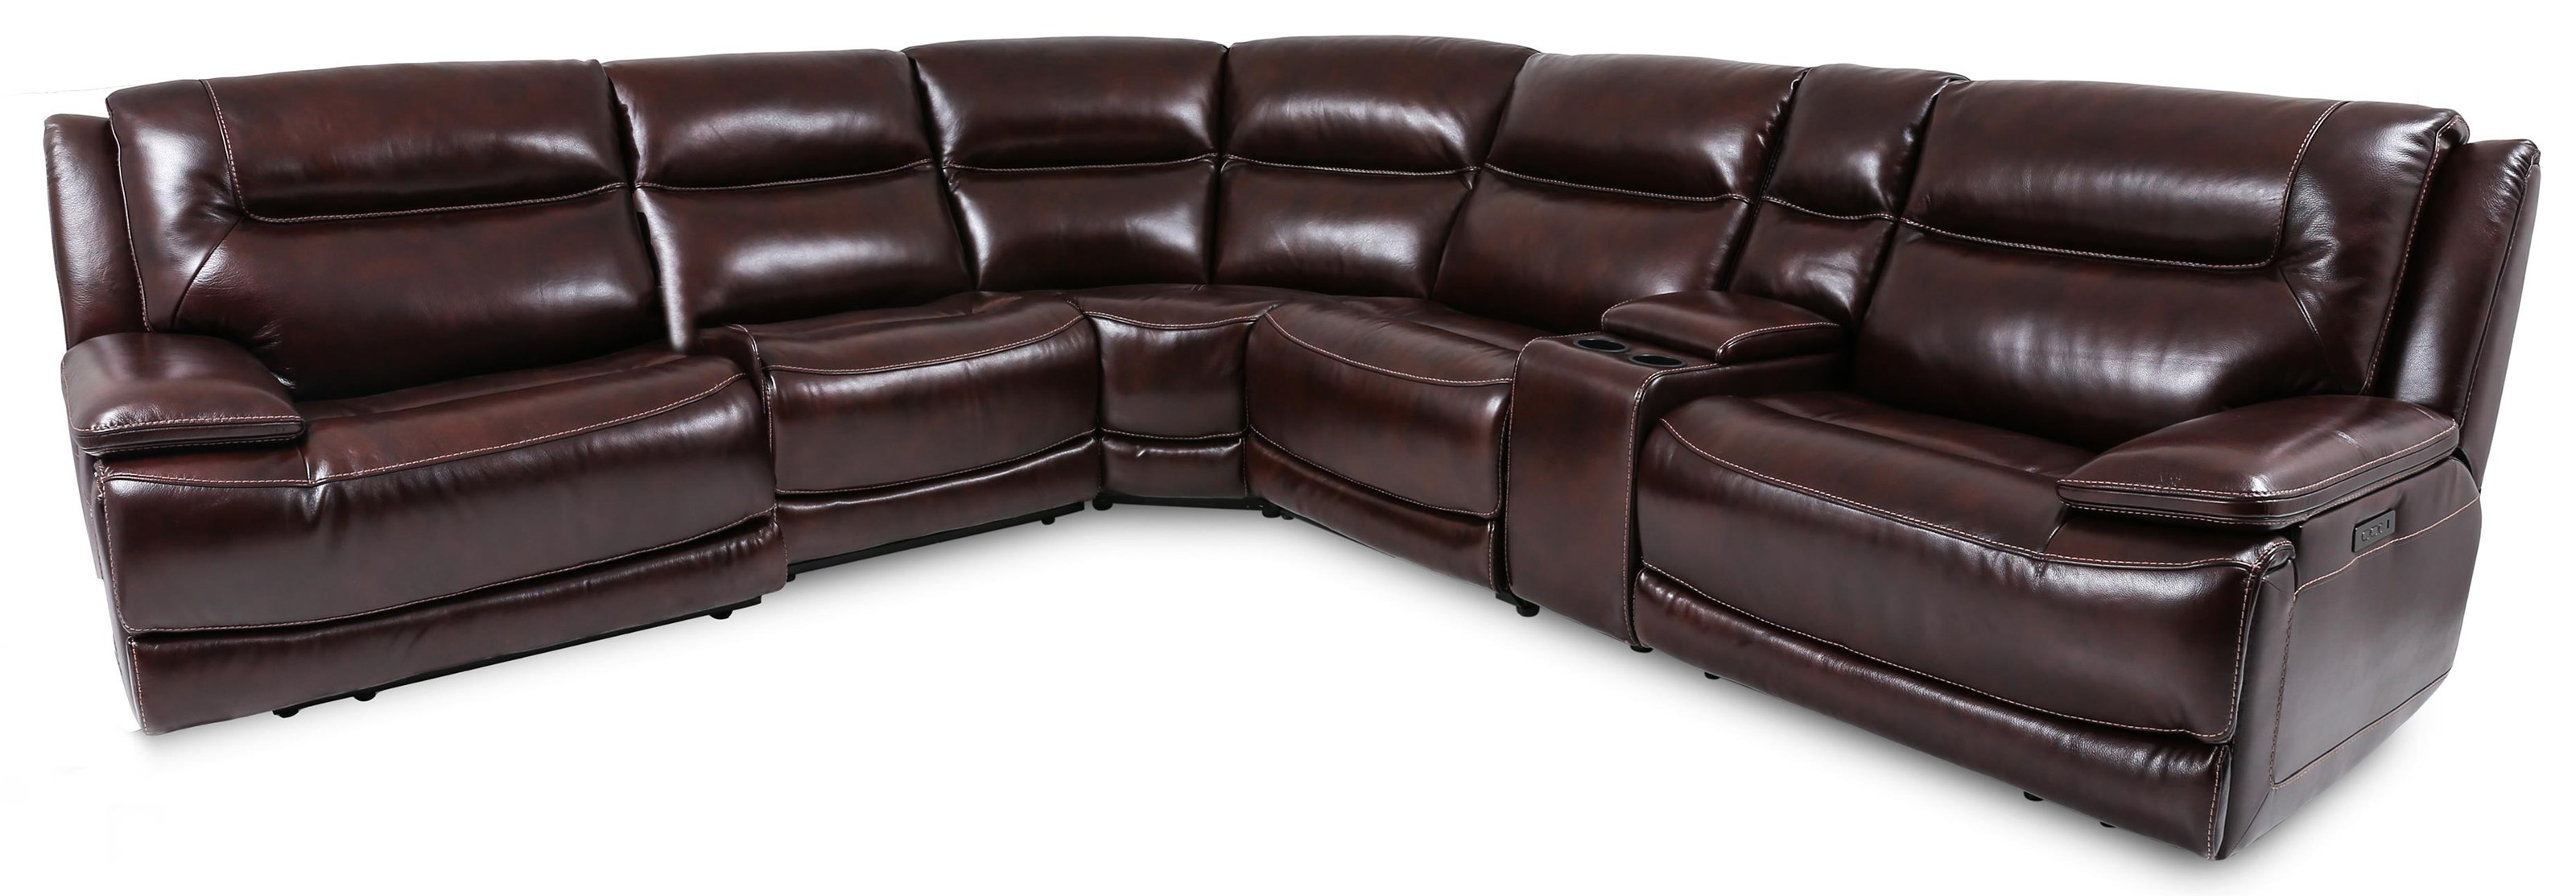 70128 6-Piece Power Reclining Sectional Sofa by Cheers at Beck's Furniture